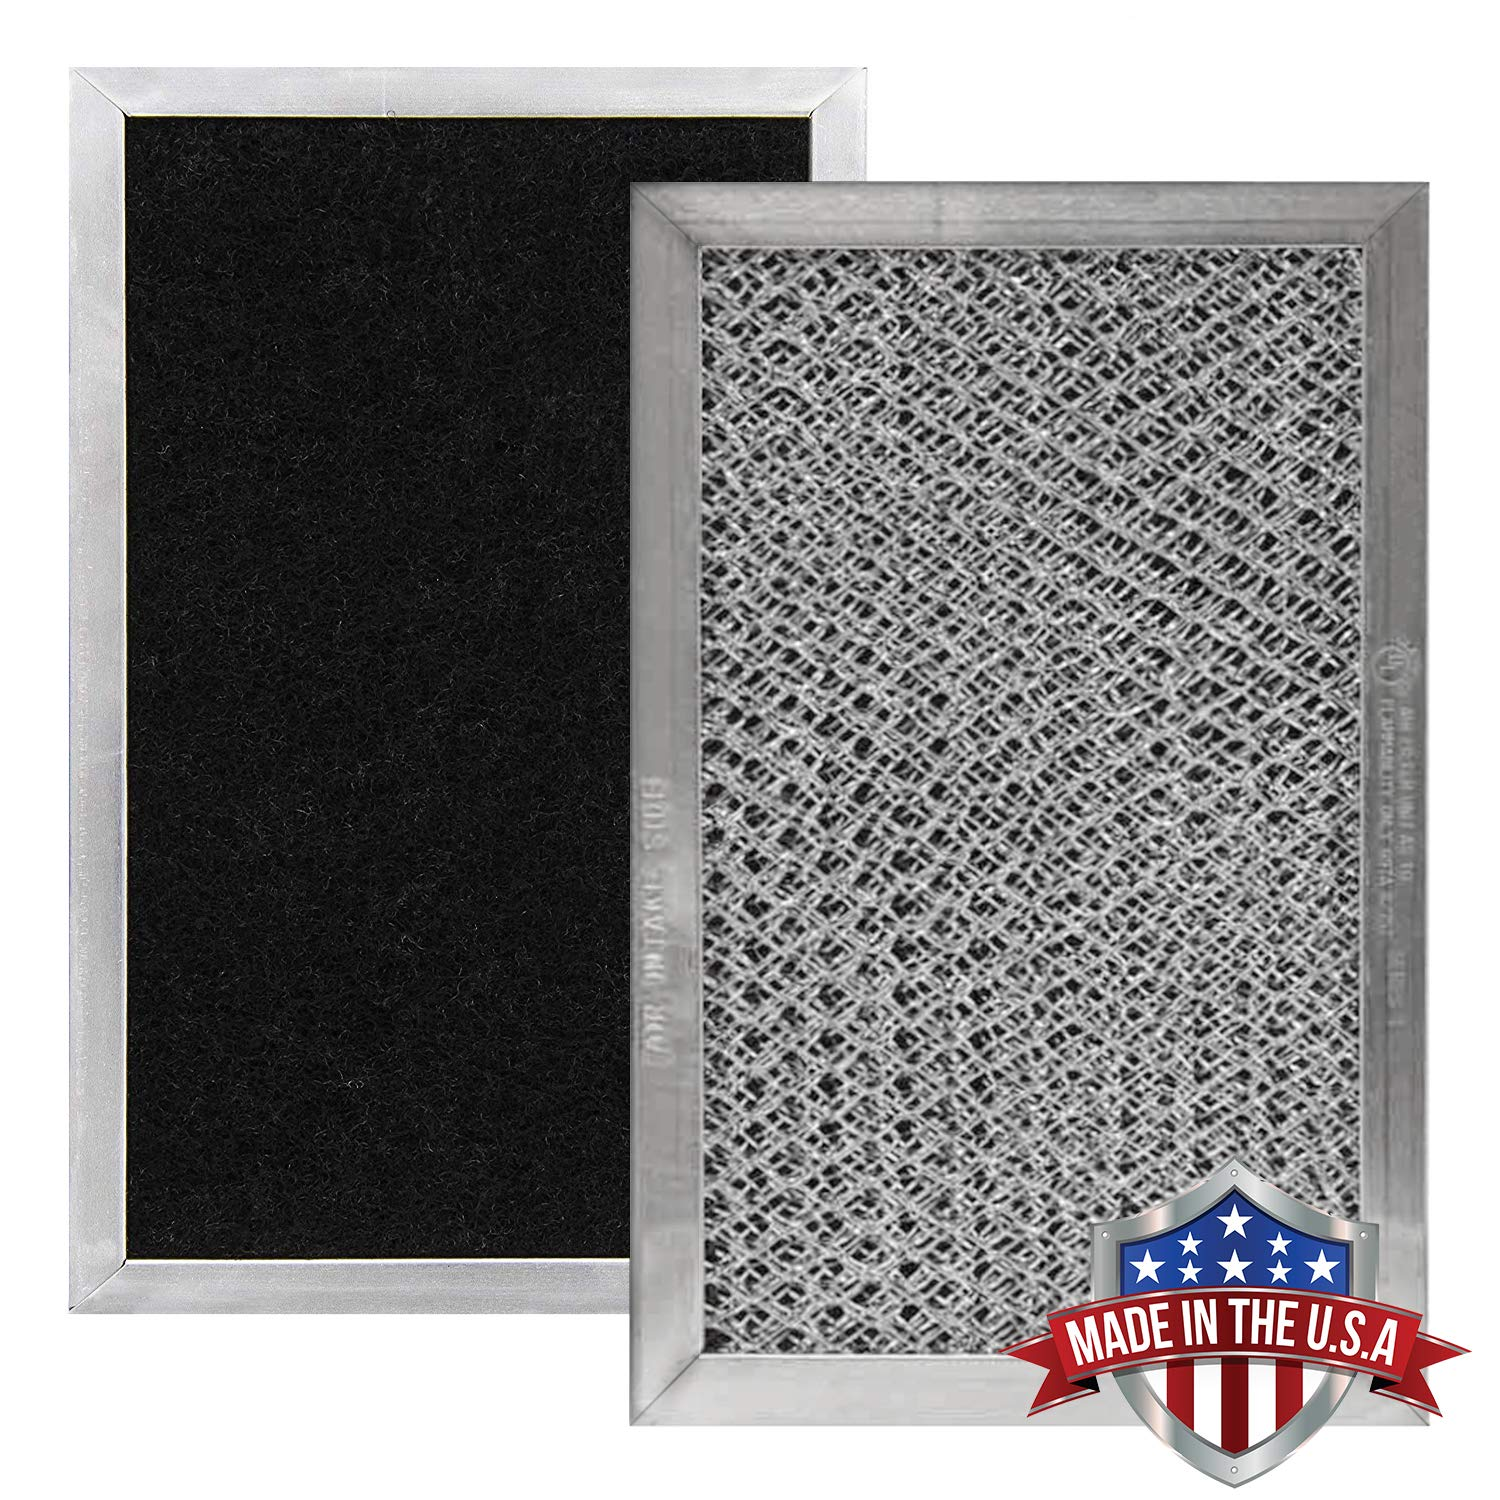 GE JX81C, WB02X10776, LG 5230W1A011B Microwave Recirculating Charcoal Filter (Made in USA) (2-Pack)